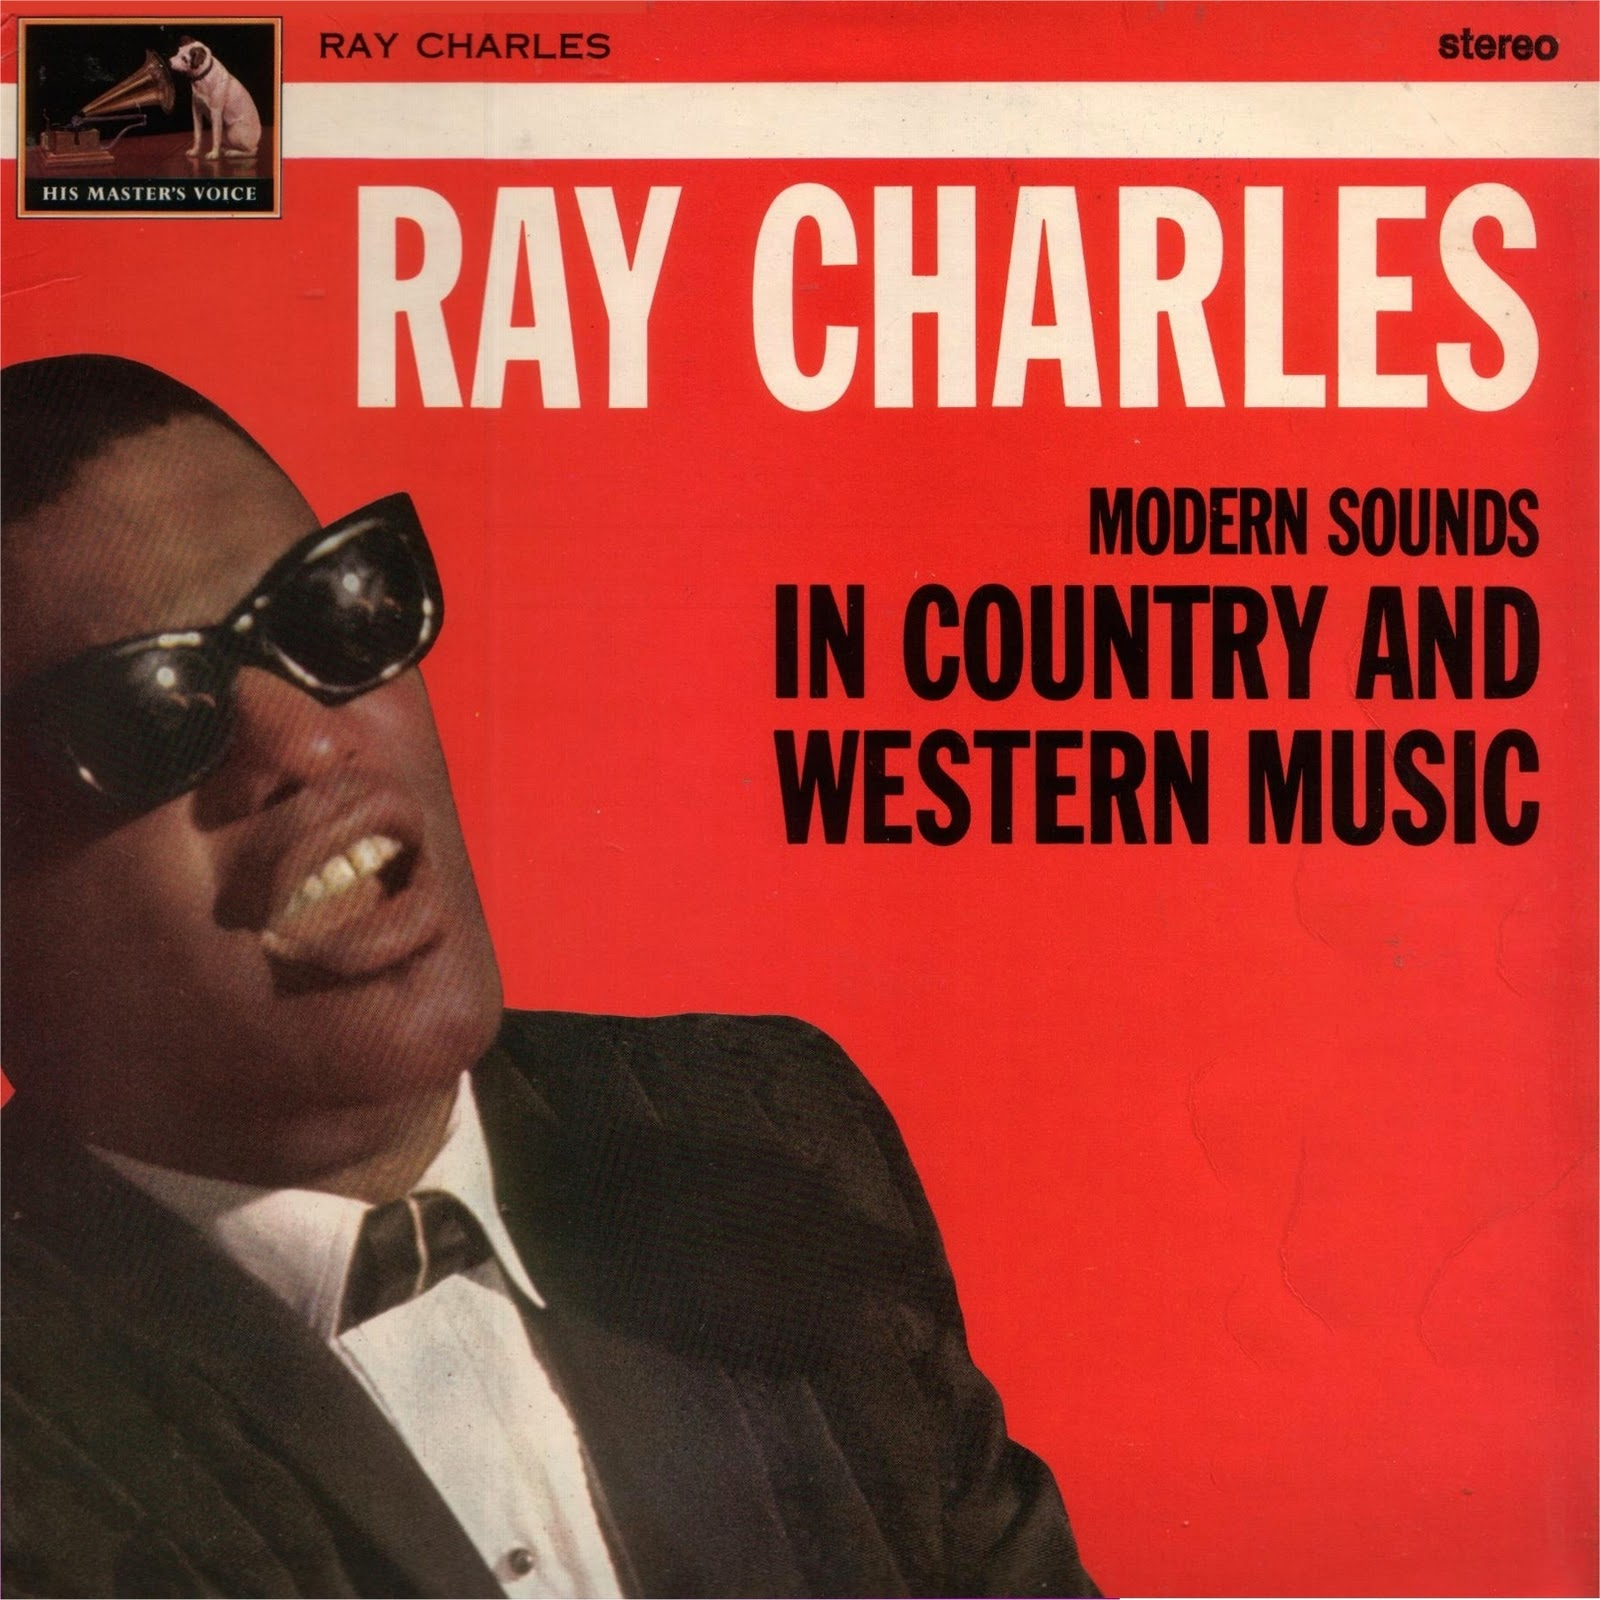 henry stone to larry newton on ray charles �get a fuckin